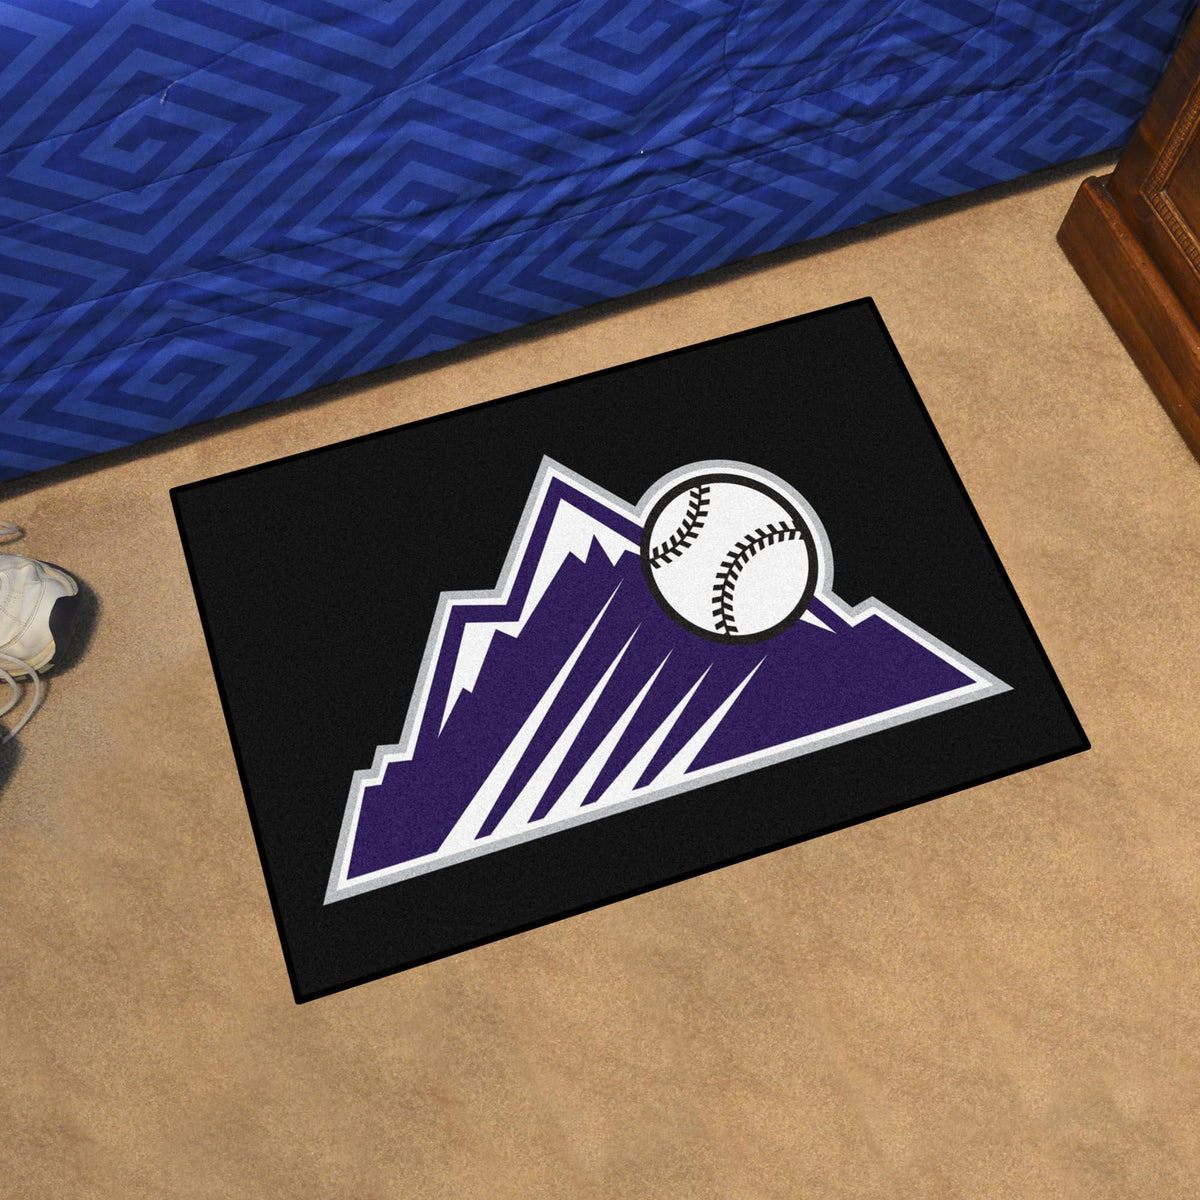 MLB - Starter Mat MLB Mats, Rectangular Mats, Starter Mat, MLB, Home Fan Mats Colorado Rockies 2